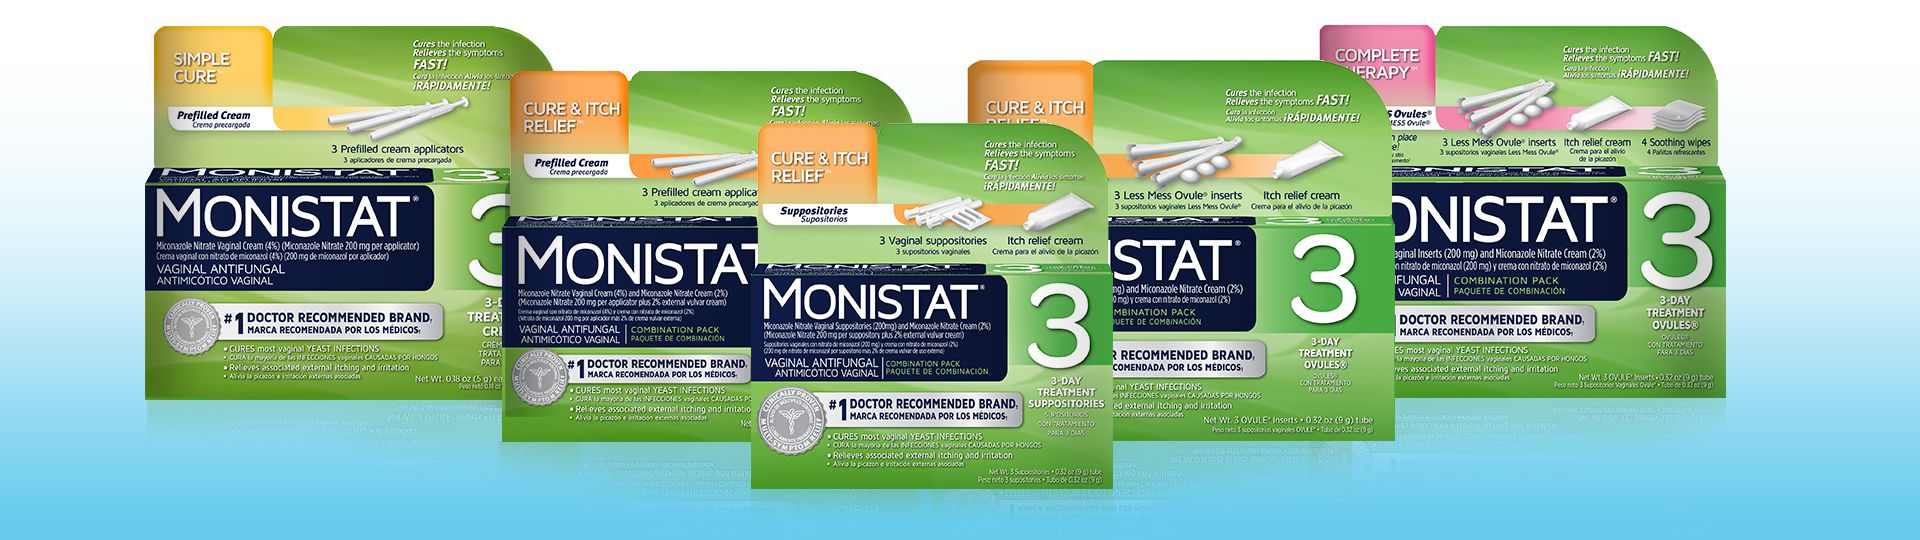 #MonistatCure #women #health #ad